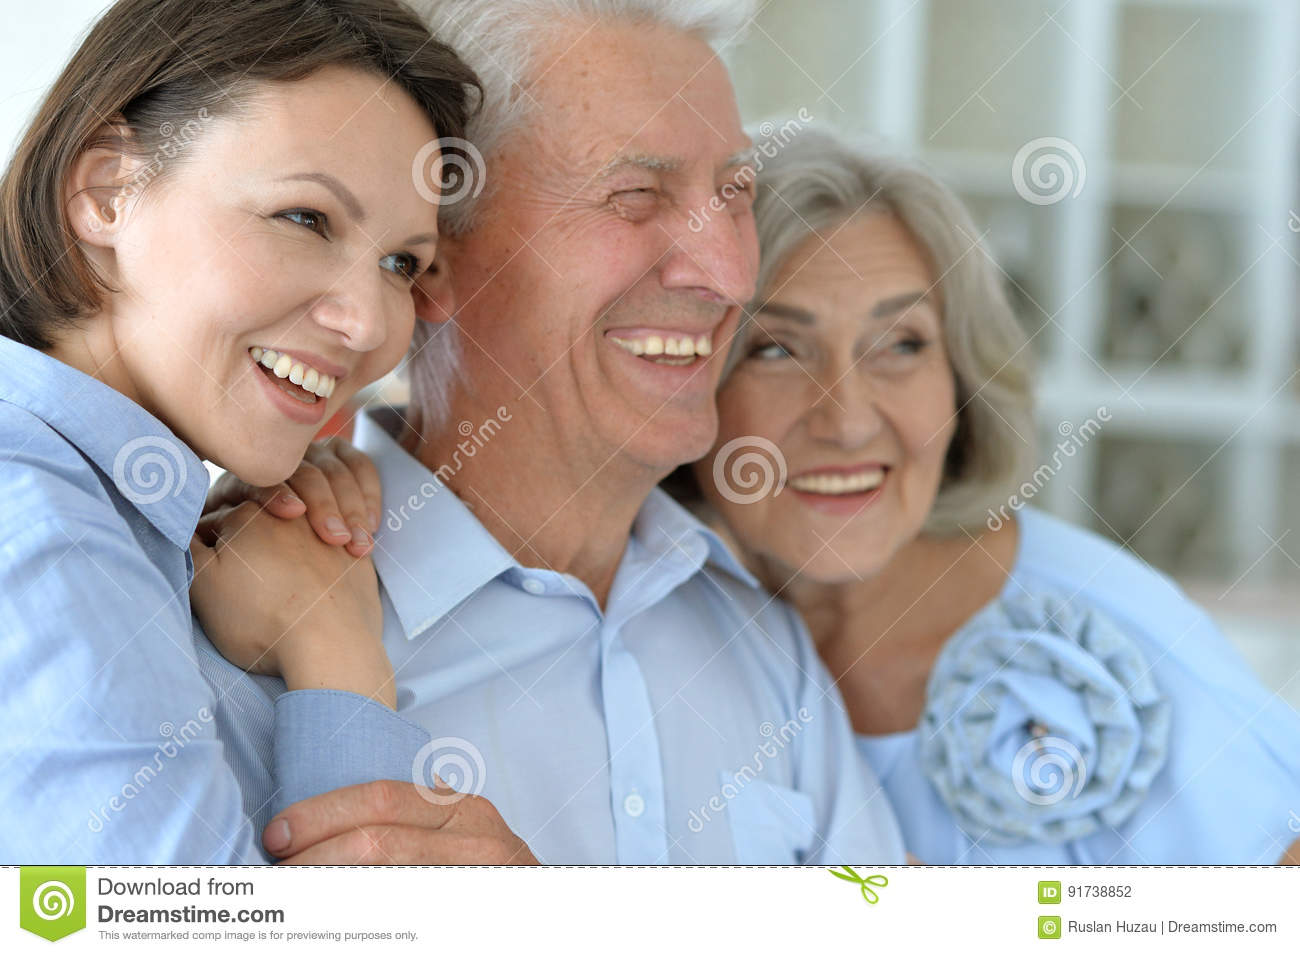 Elderly parents and their adult daughter